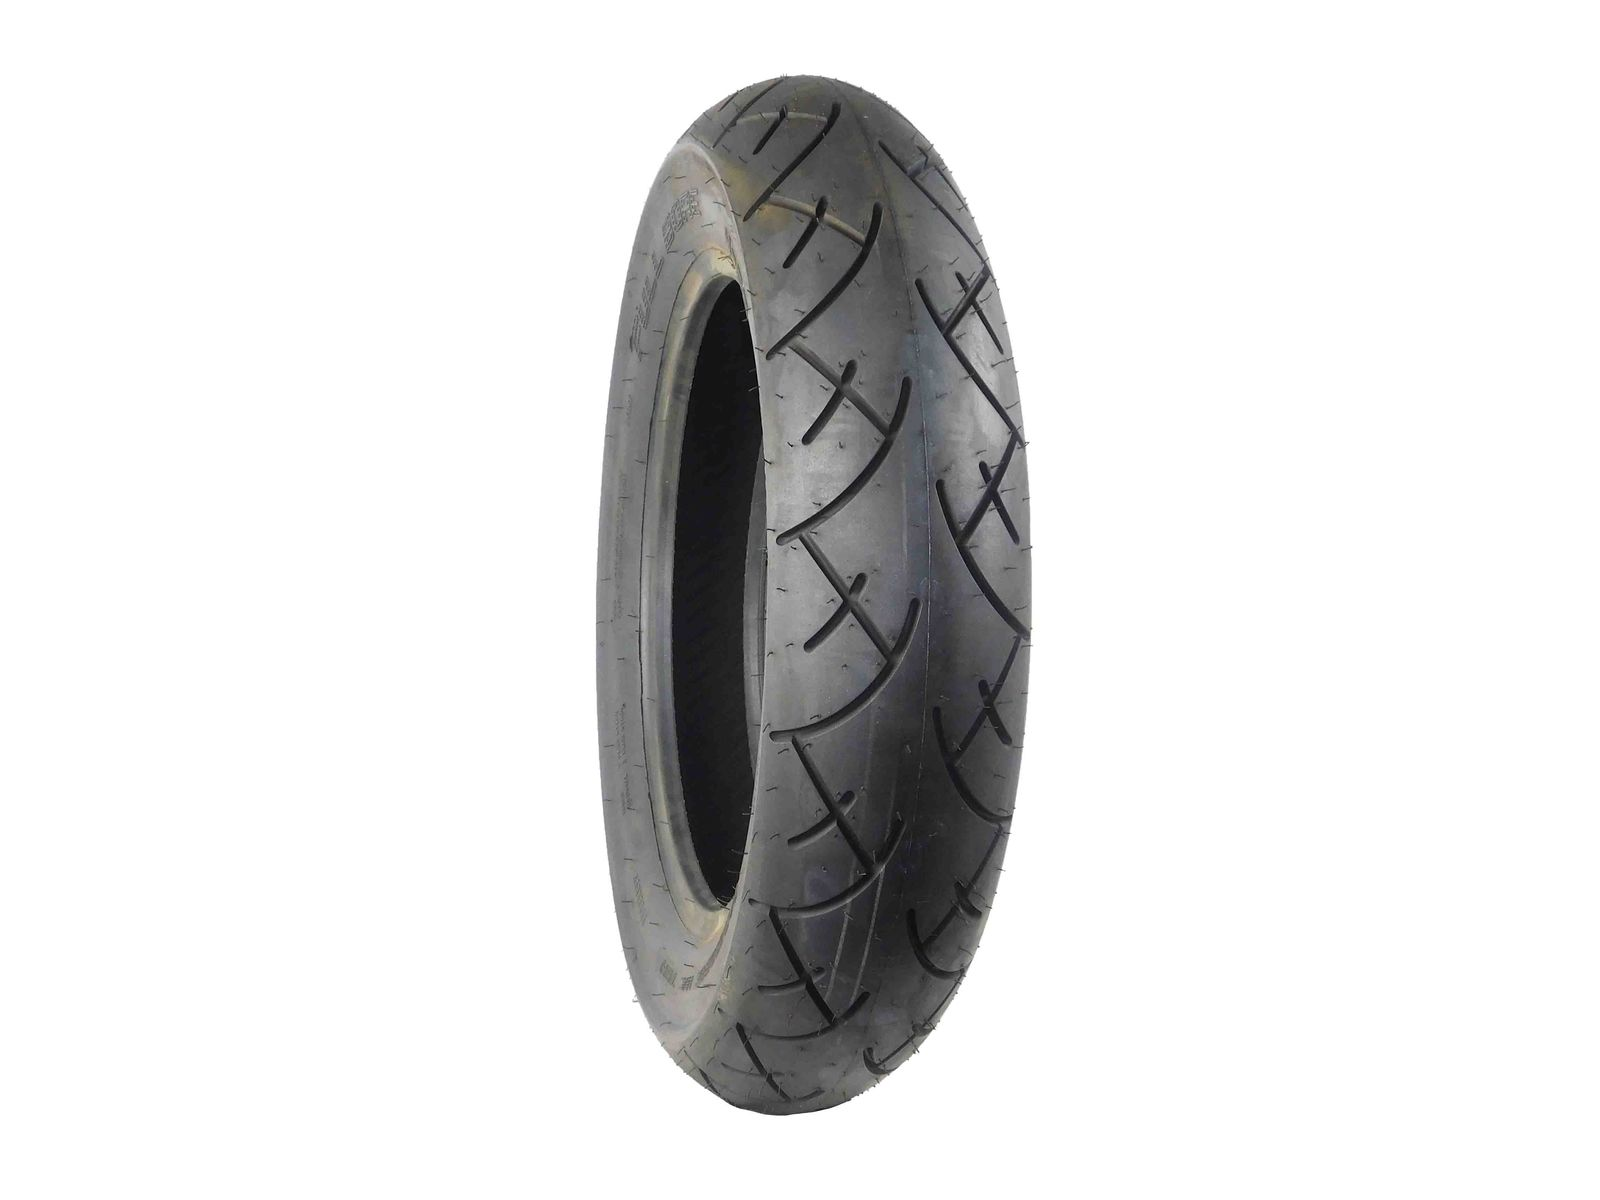 Full-Bore-120-70-21-Front-140-90-15-Rear-Set-Cruiser-Motorcycle-Tires-image-4